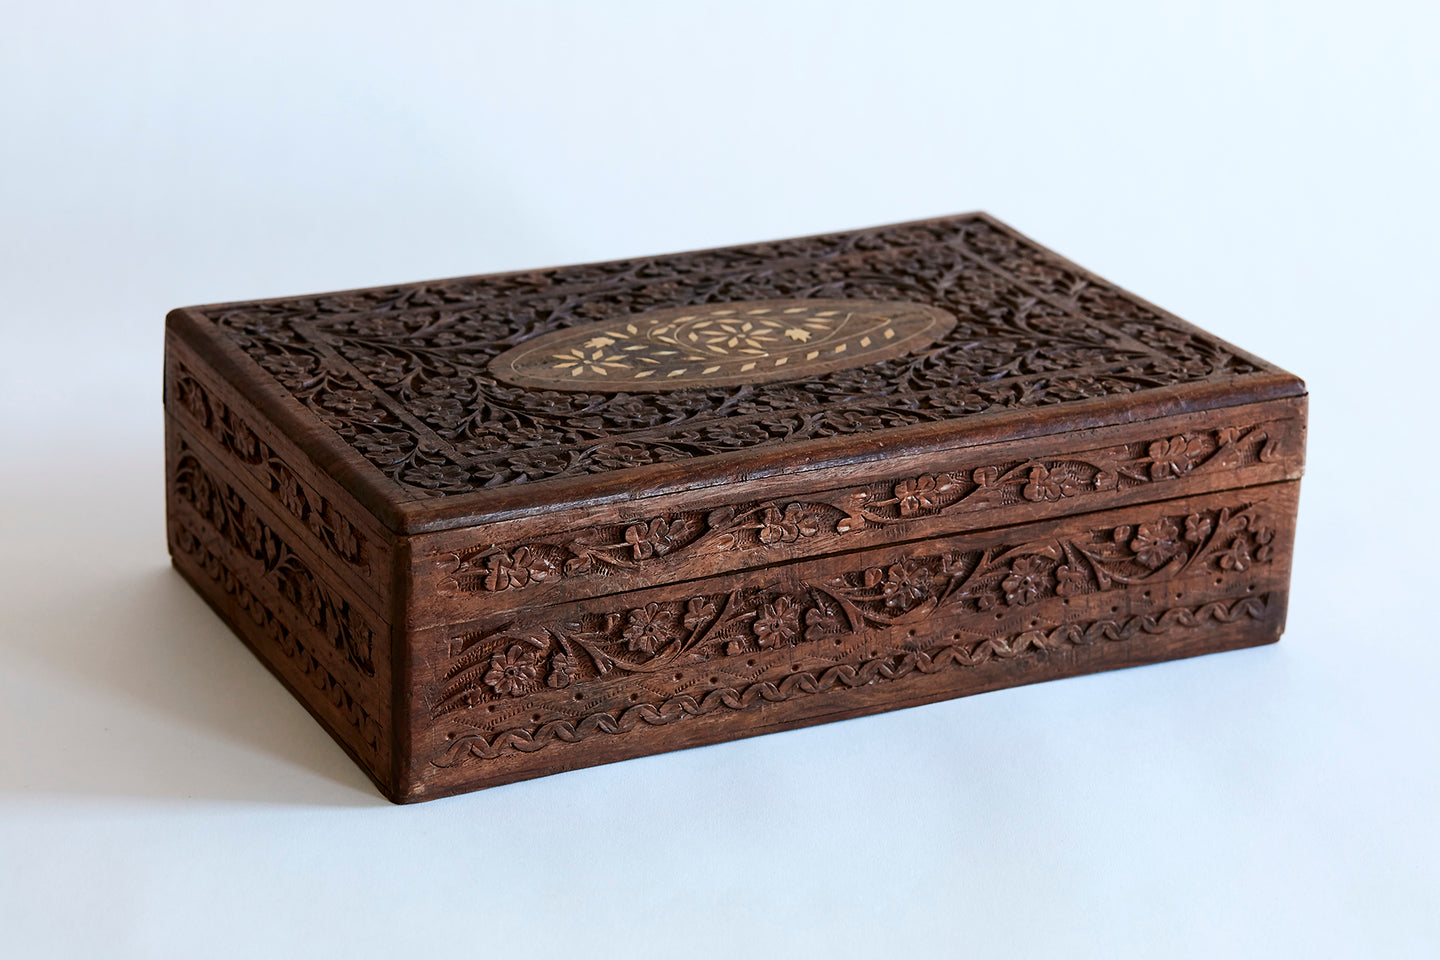 carved wood box with bone inlay detail